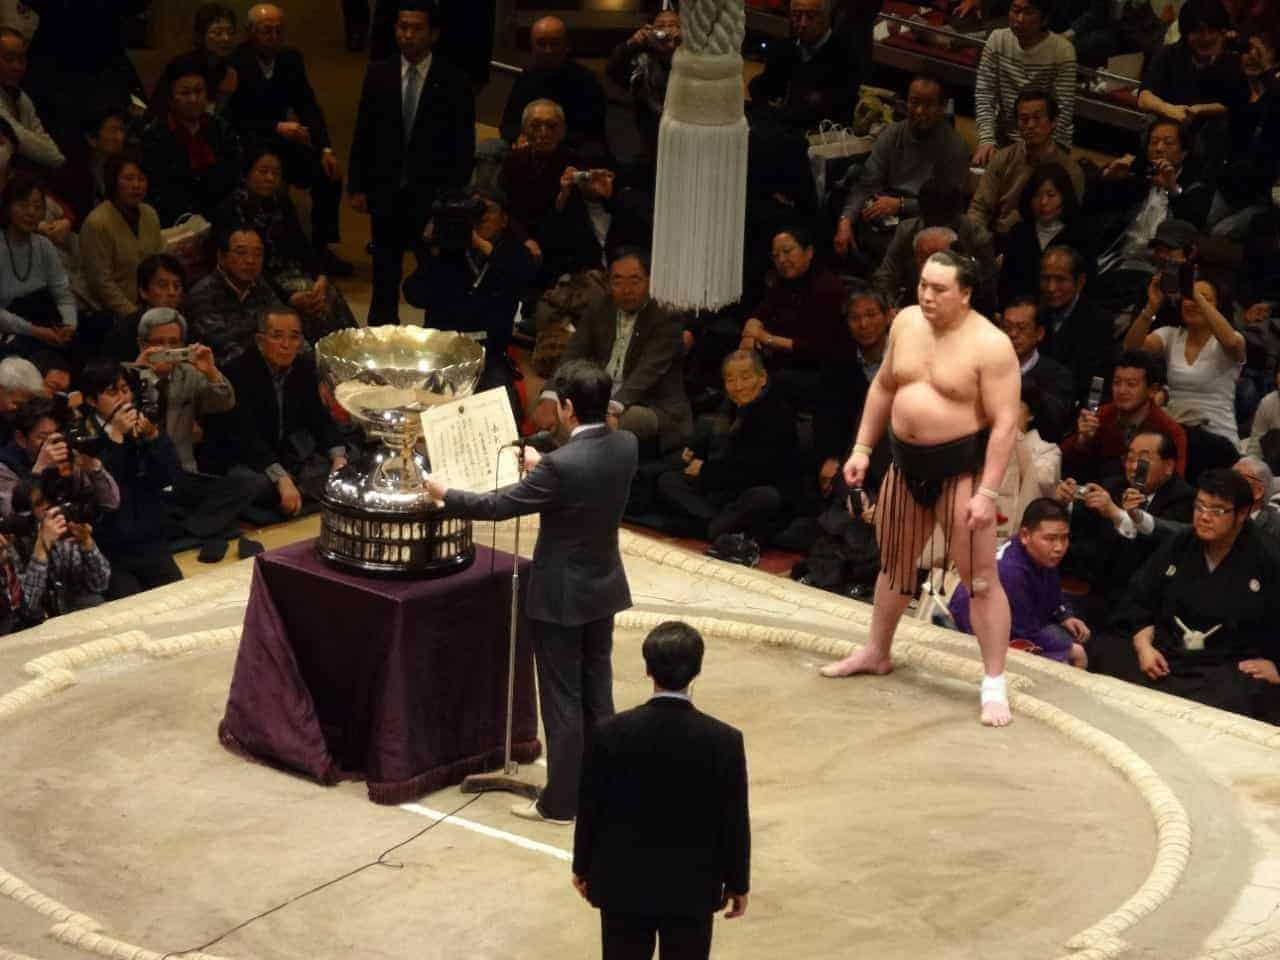 Sumo wrestler awarded trophy by Prime Minister of Japan, Abe.